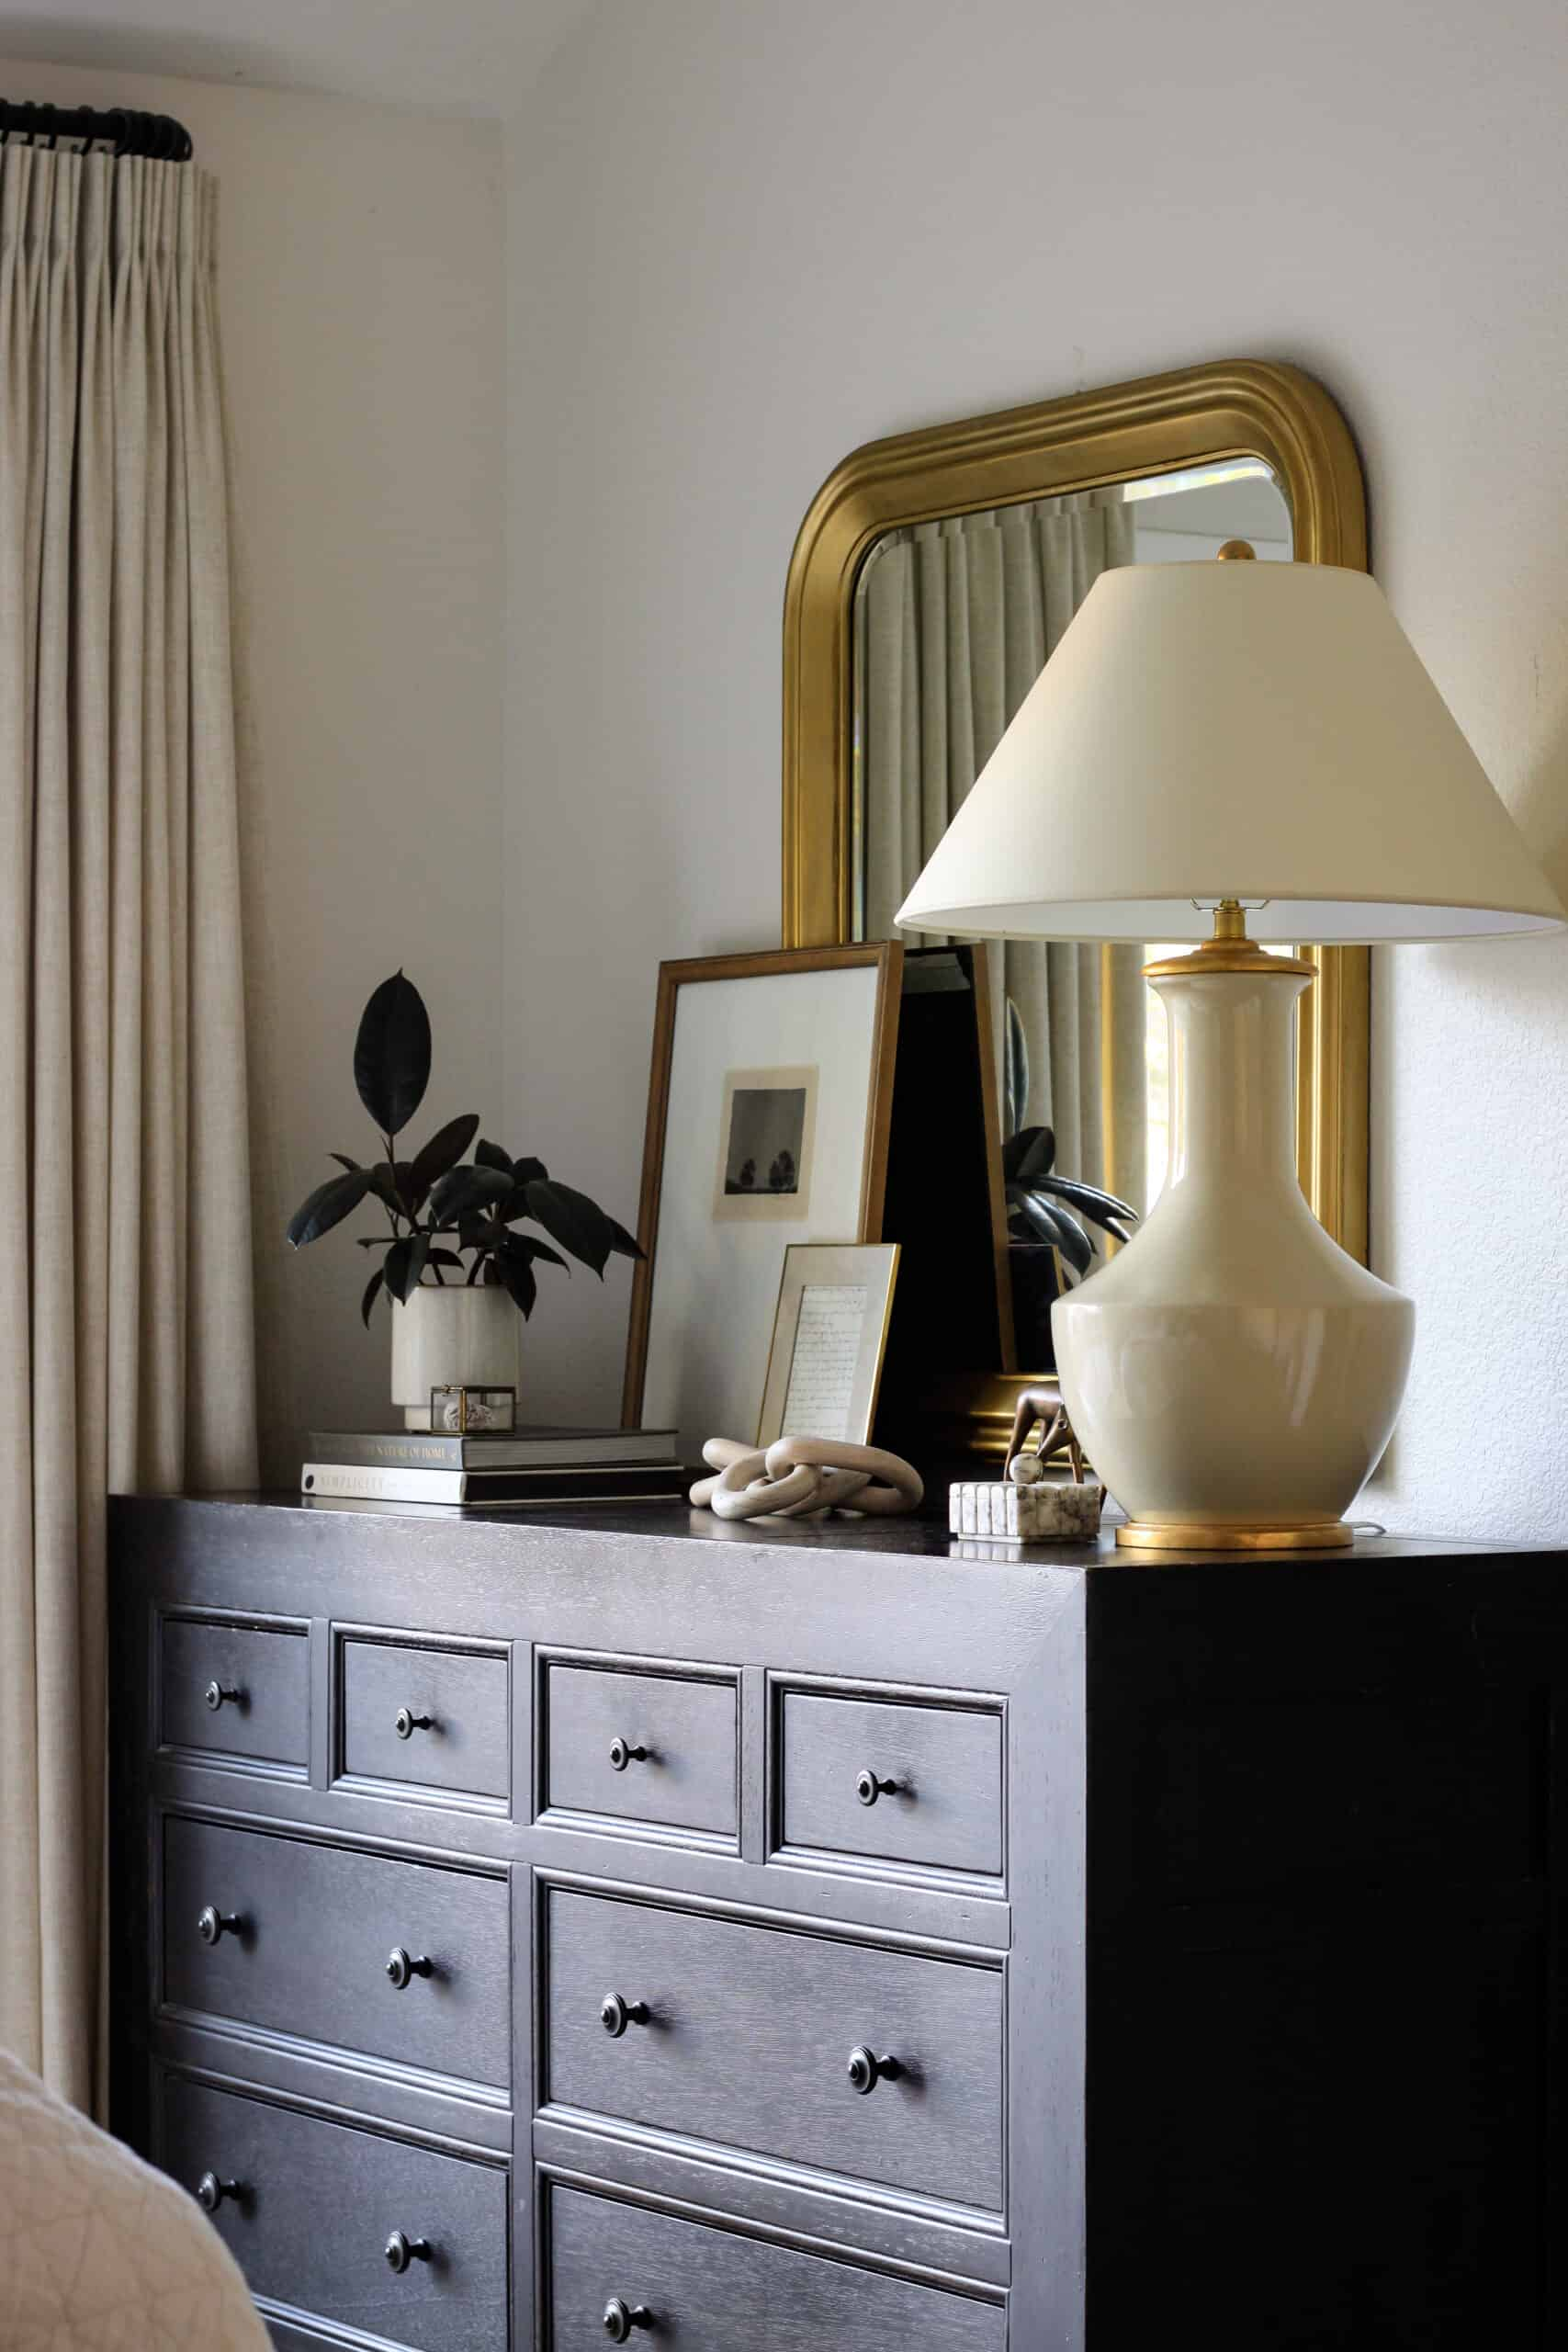 side view of black dresser with cream lamp and gilded mirror with art and a plant